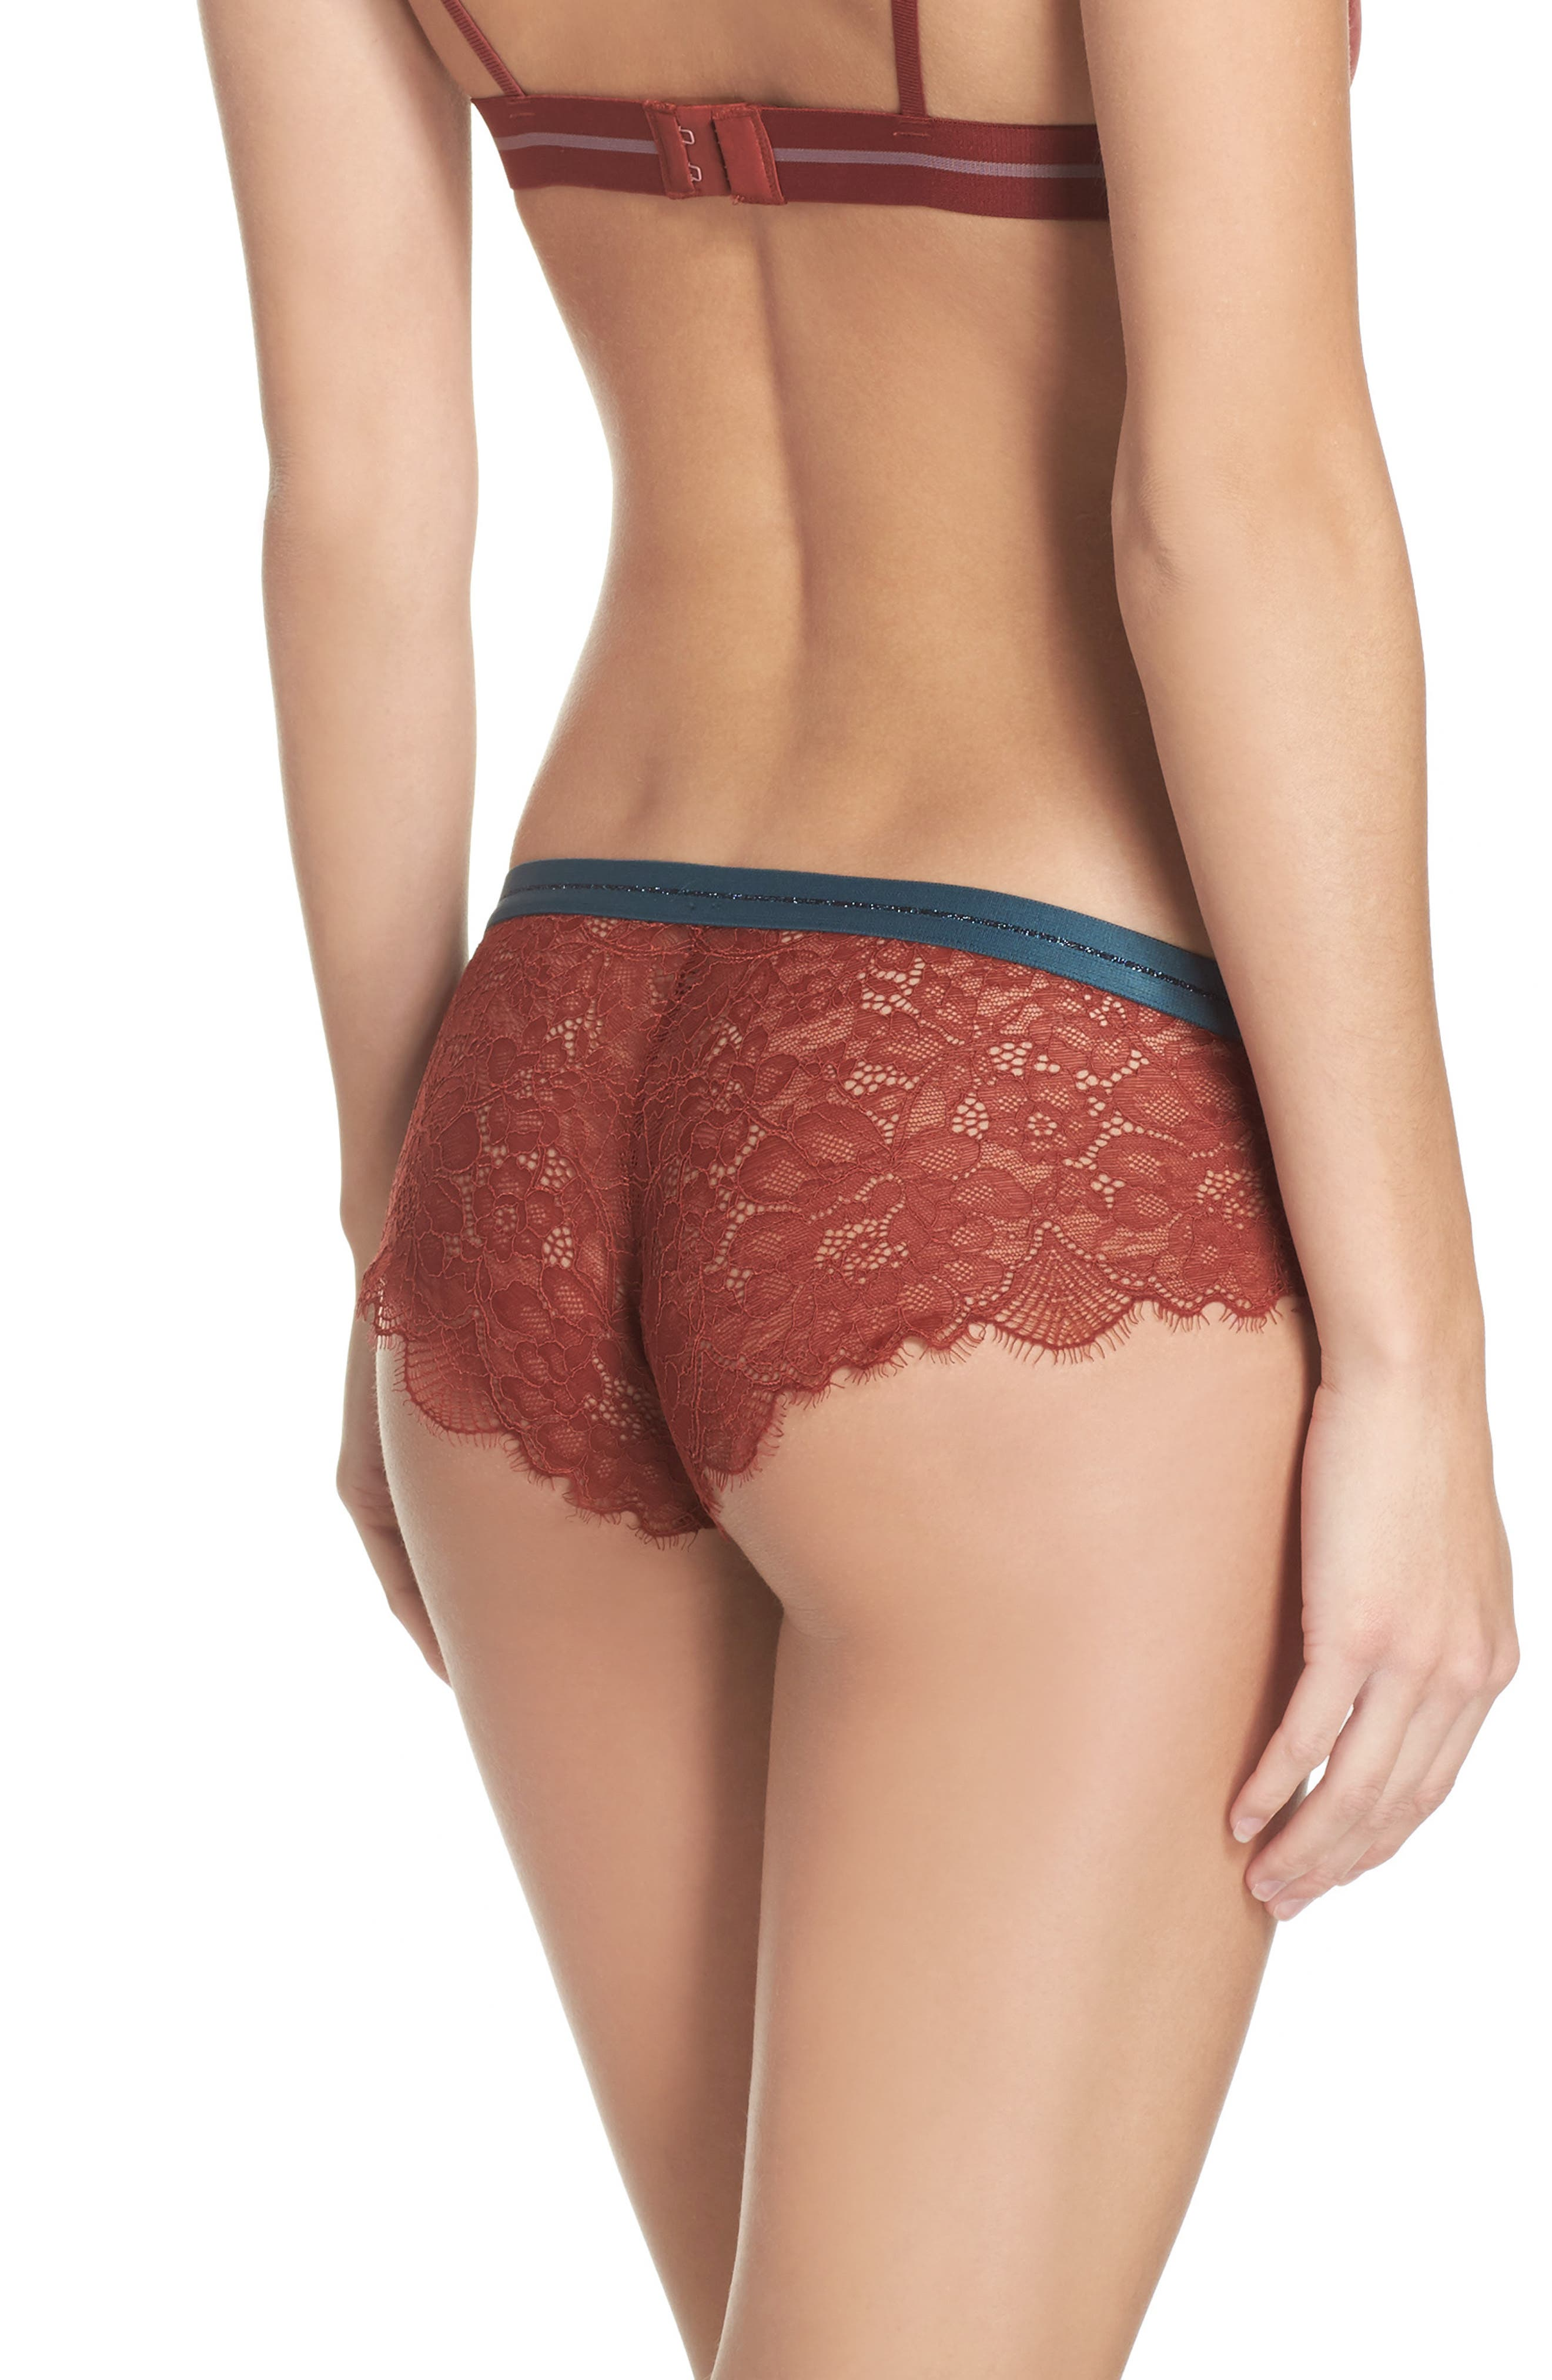 Dragonfly Lace Panties,                             Alternate thumbnail 2, color,                             200